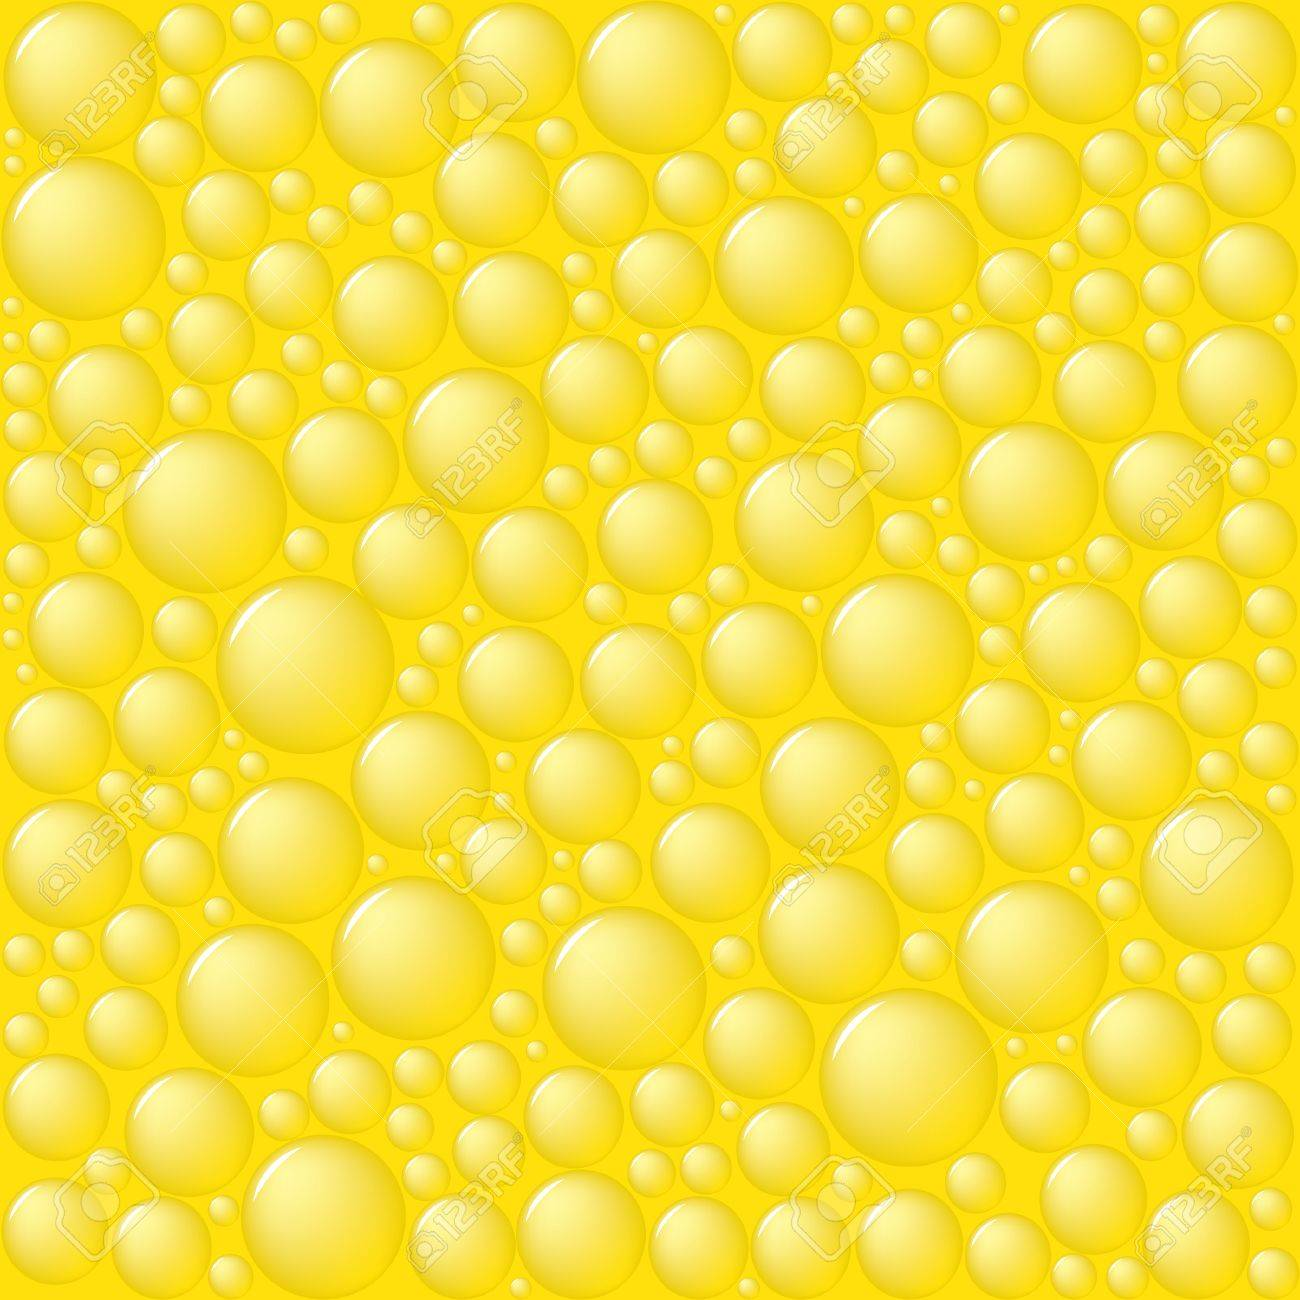 Bubbles on yellow background. Vector illustration. Stock Vector - 3088032